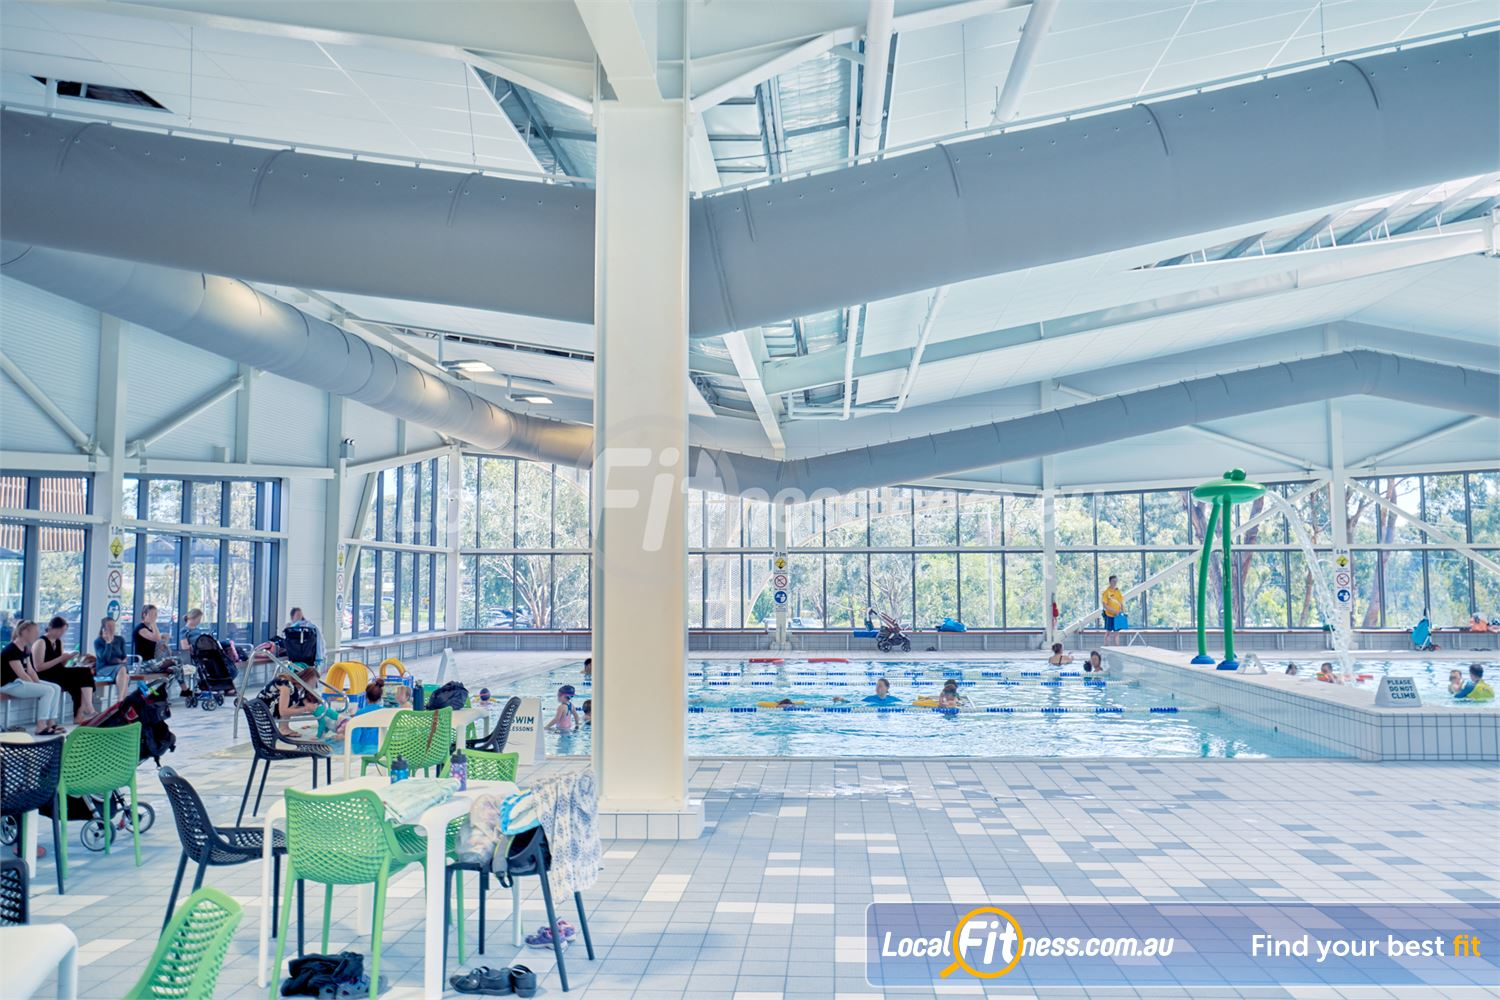 Eltham Leisure Centre Near Research The pool members lounge giving your relaxing space while you watch your kids.